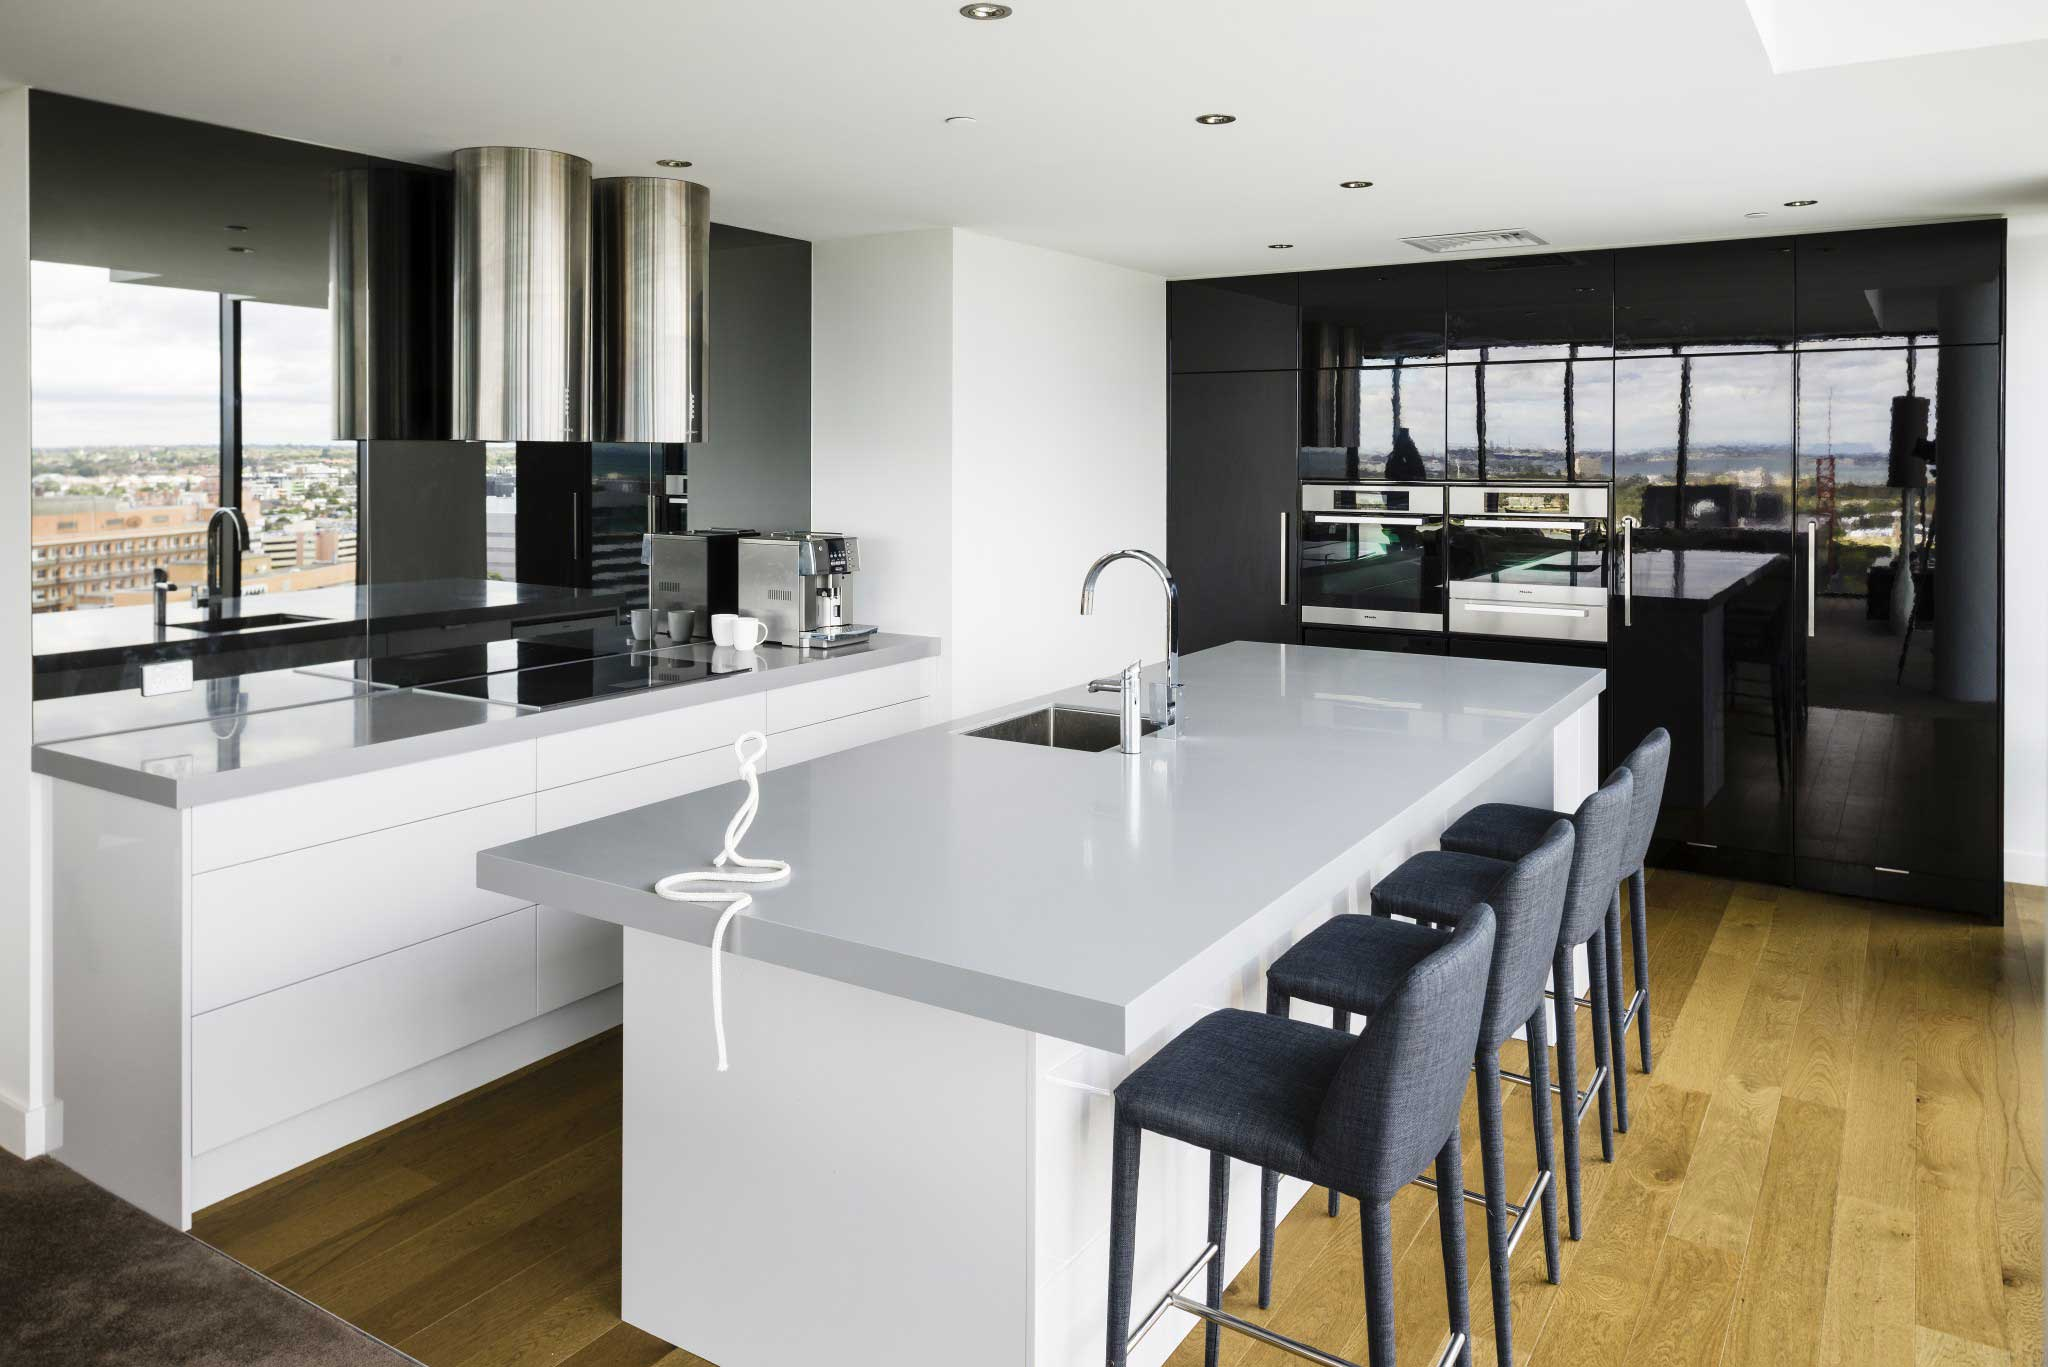 Modern Kitchen Renovation, Black and White